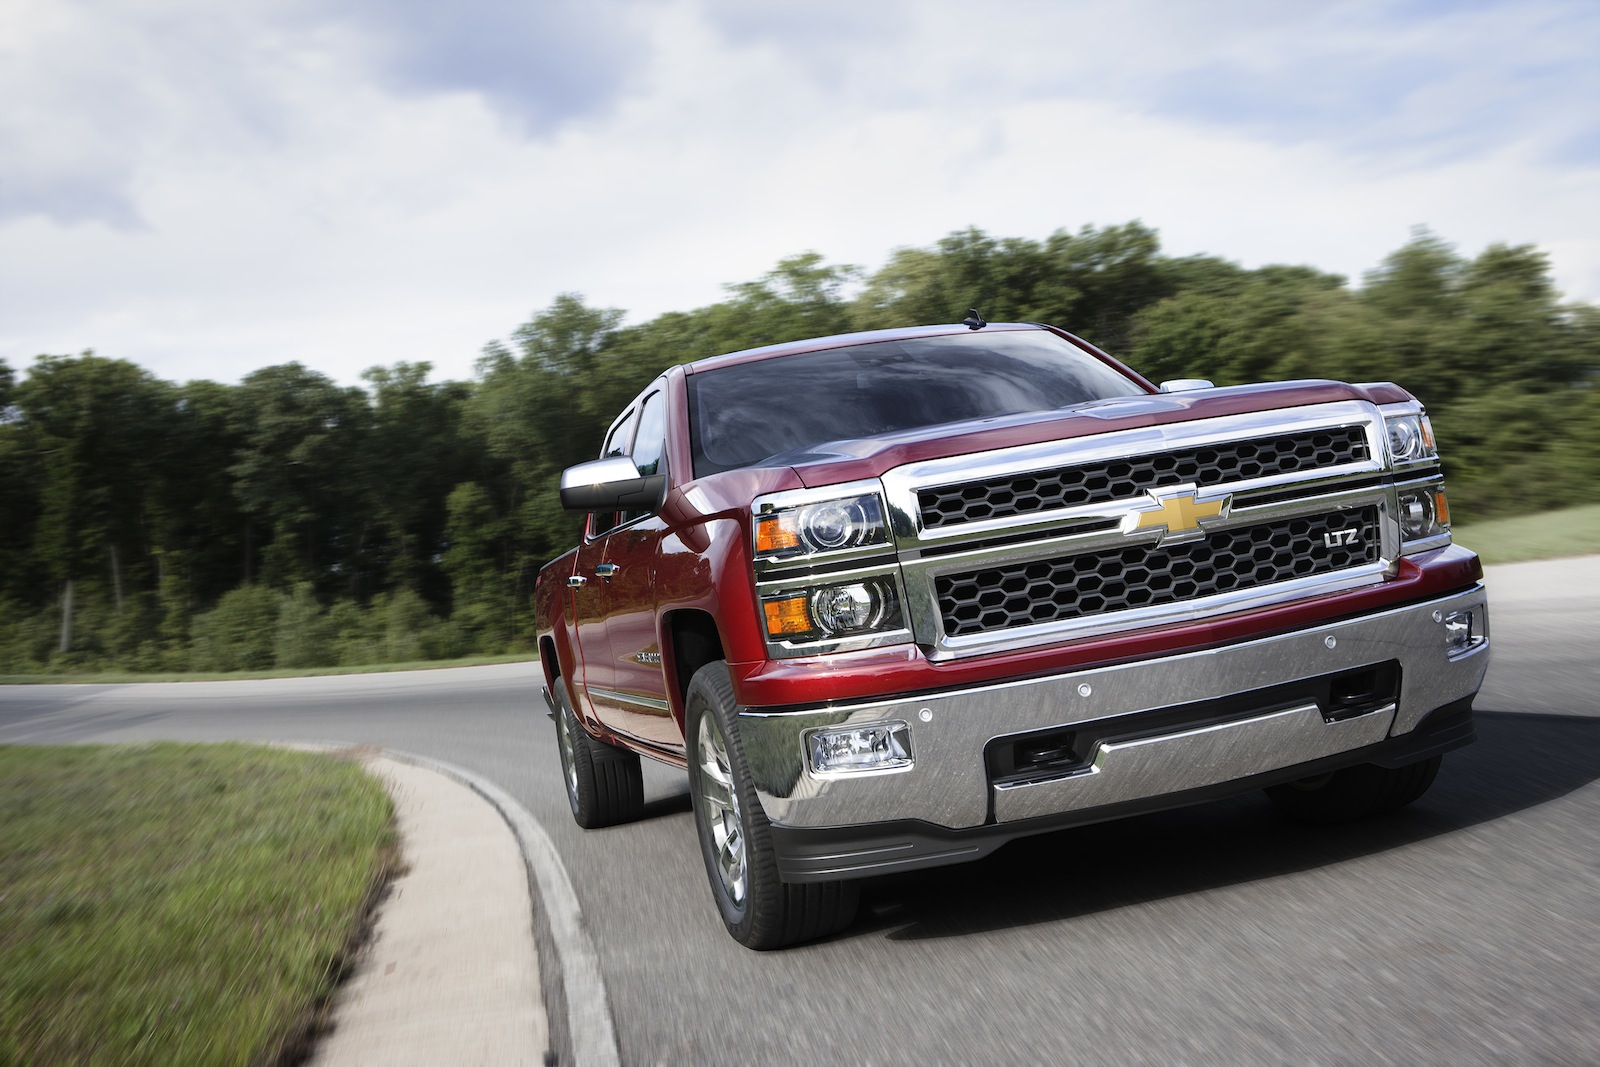 2014 Chevrolet Silverado Gmc Sierra Recalled Over Power Steering 4 3 Towing Wire Harness Loss 690000 Us Trucks Affected